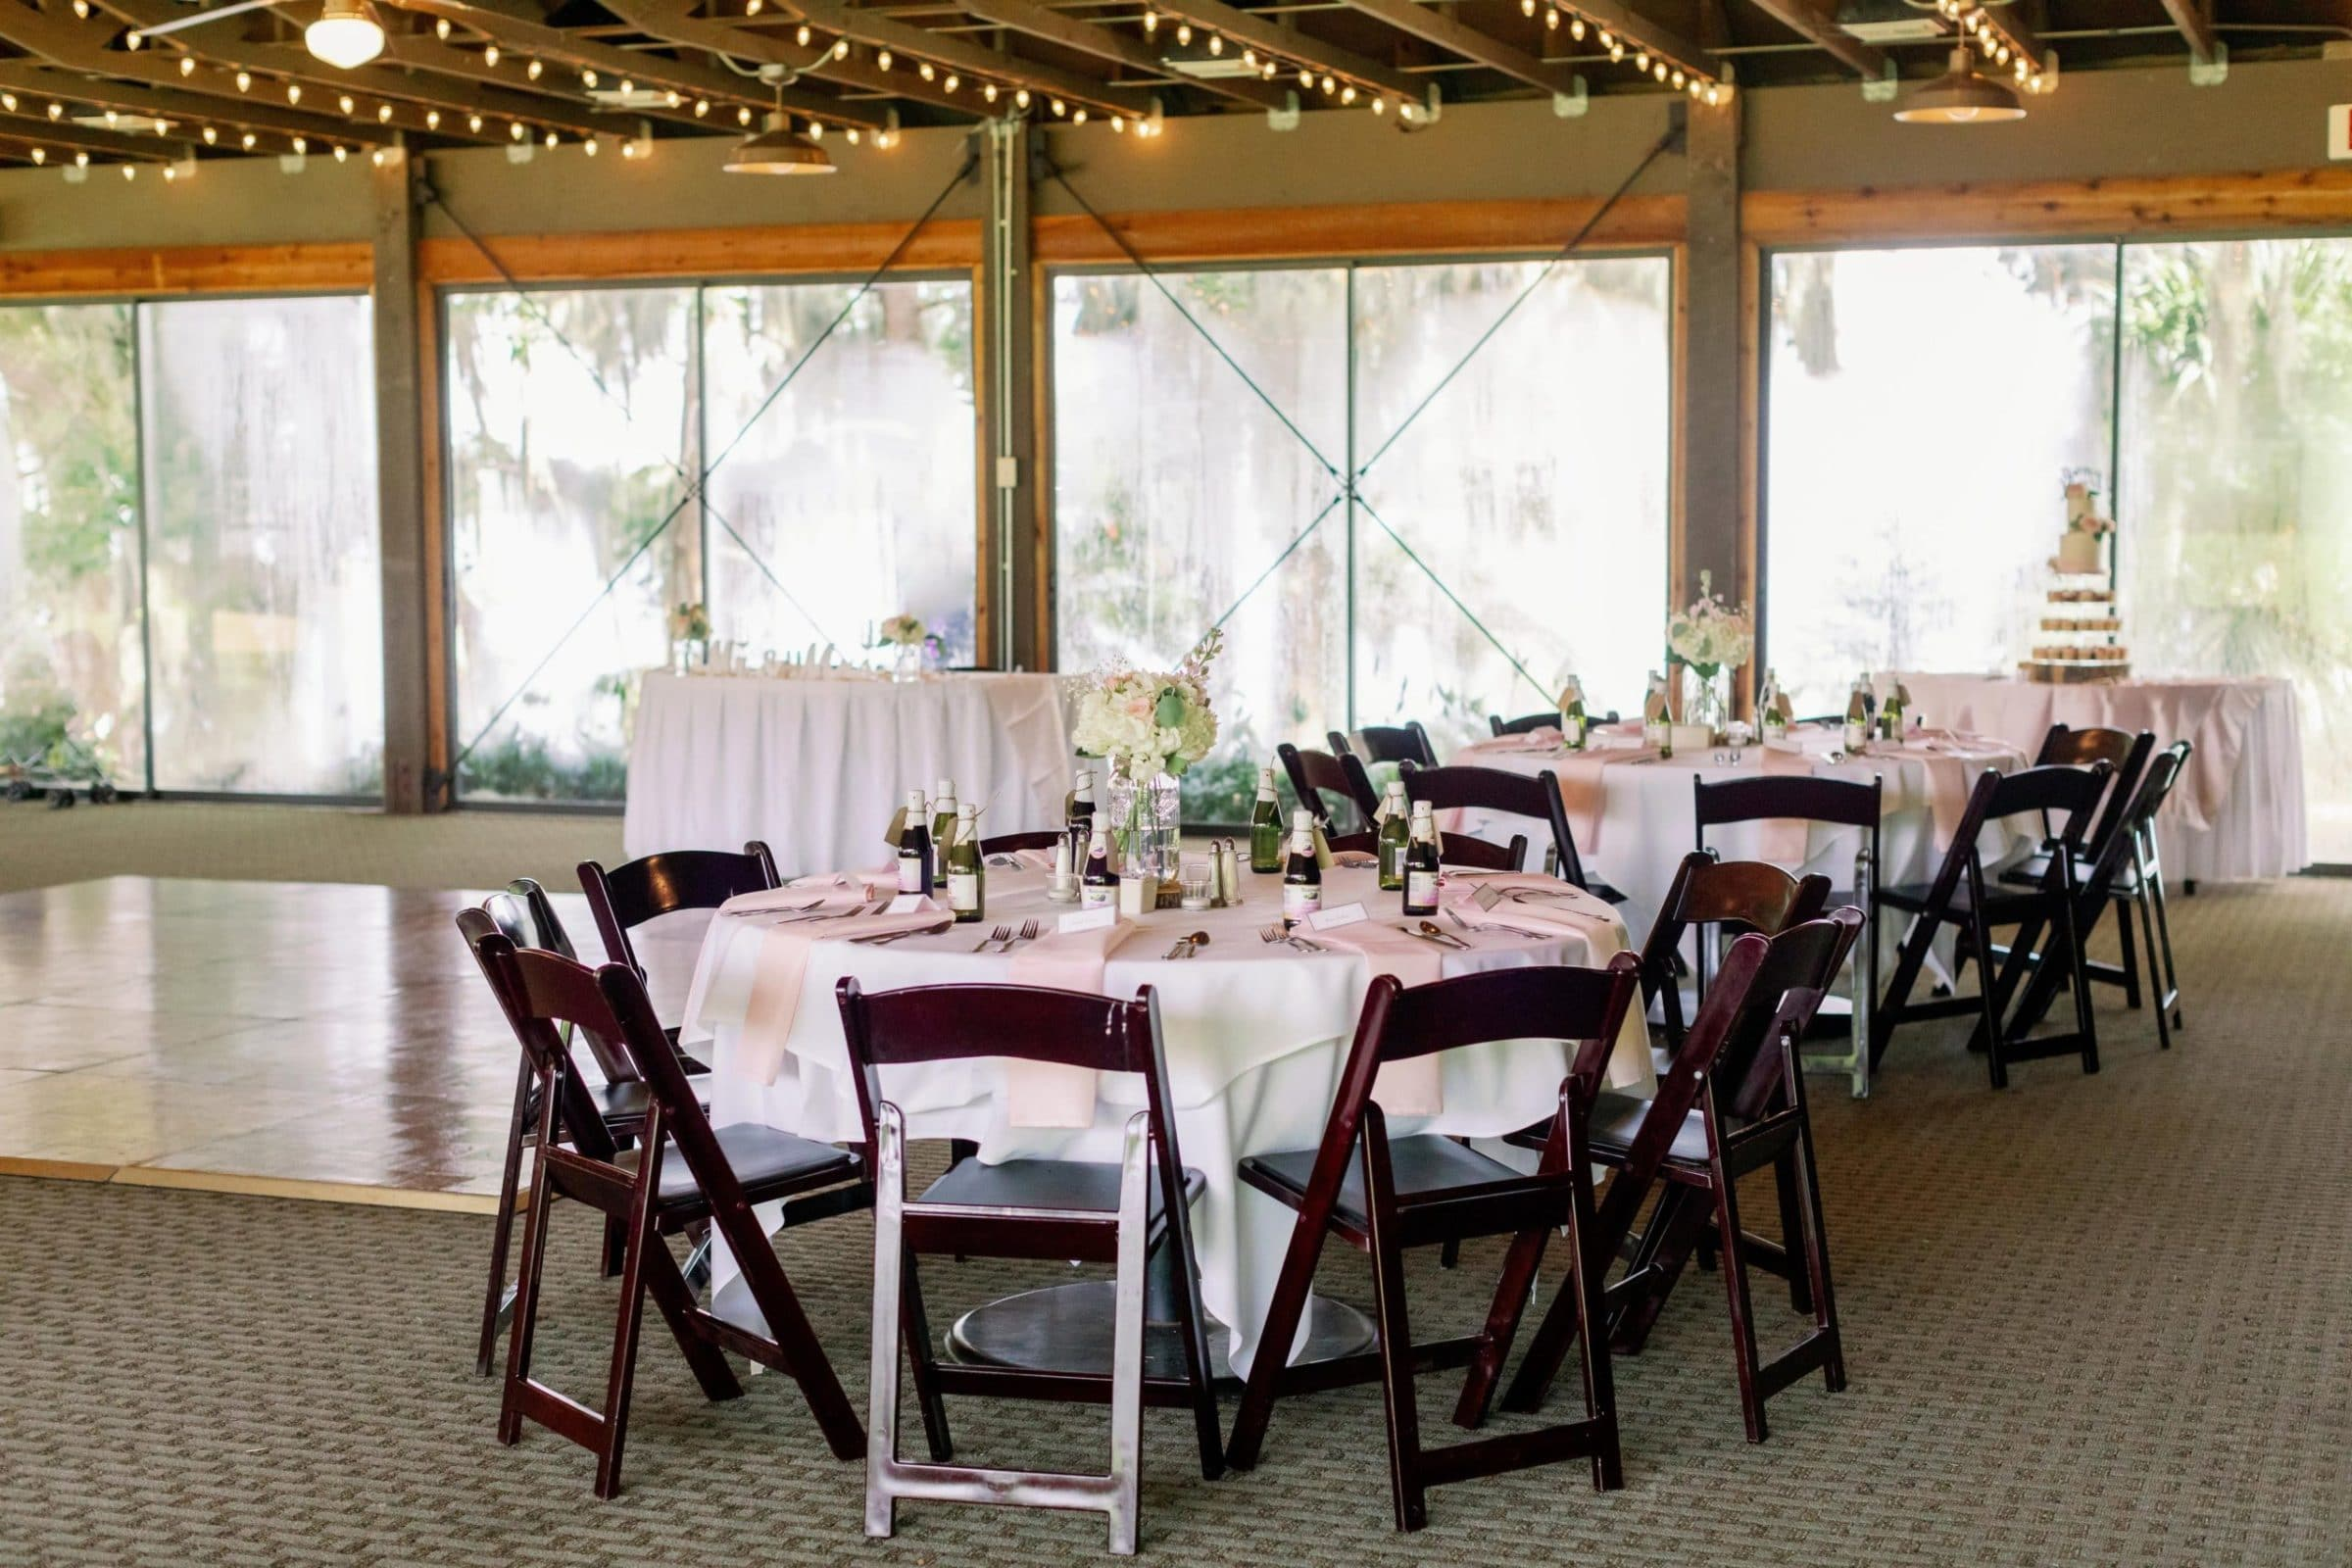 Lakeside Brunch Wedding Reception Venue with White Linen tables with Pink Napkins